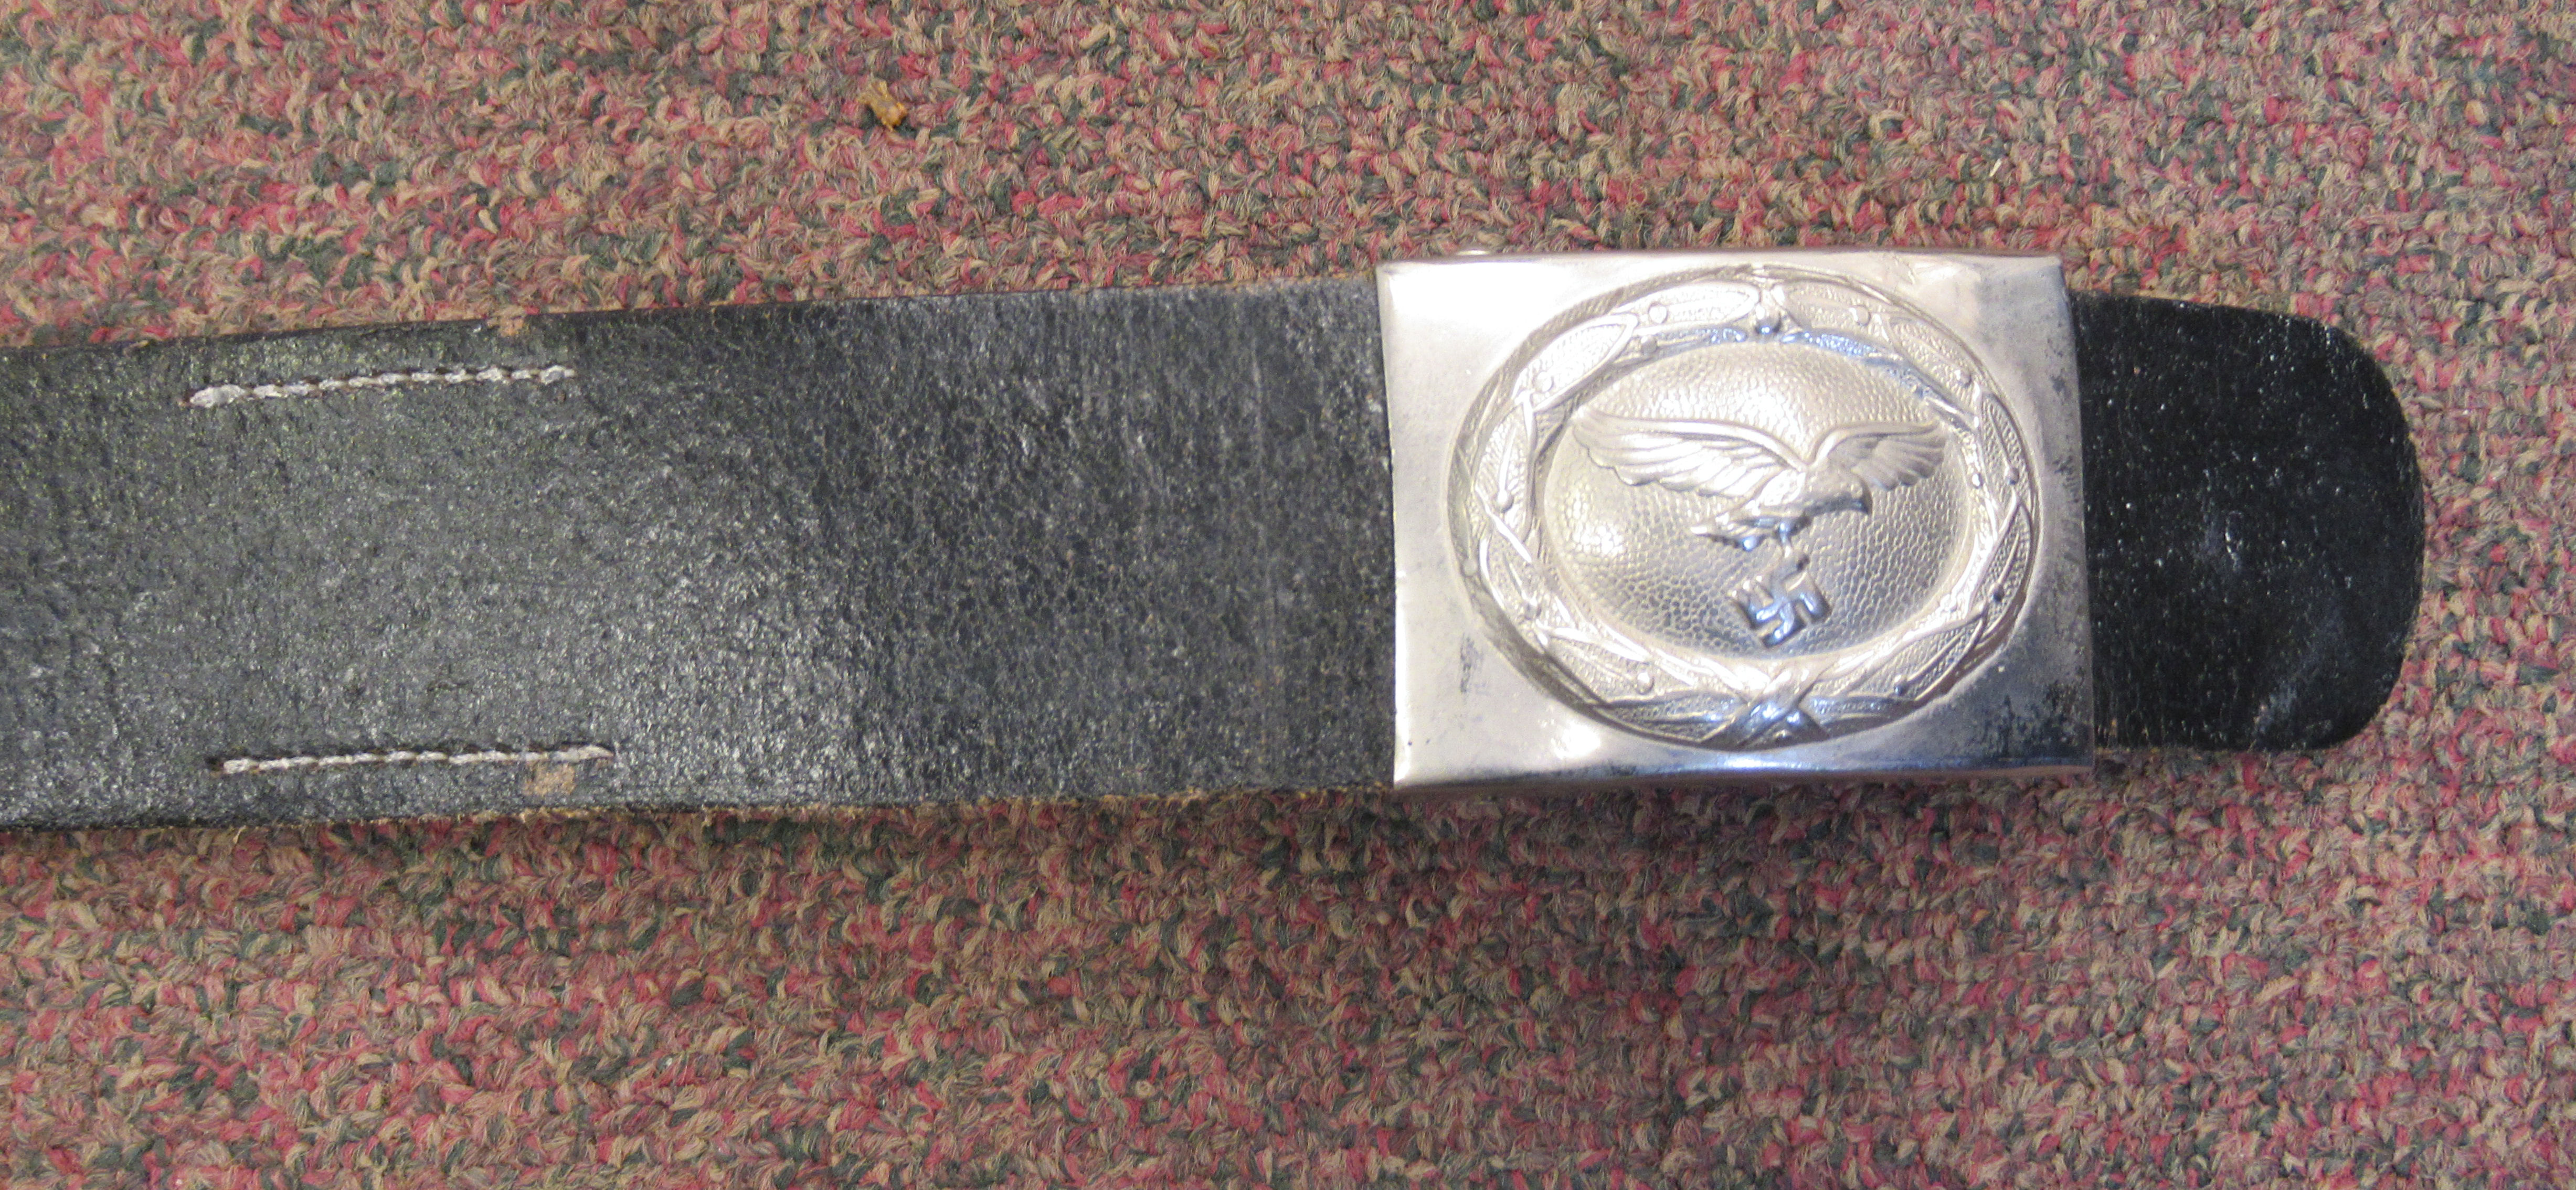 A Third Reich Luftwaffe black hide belt with an impressed weathered spreadeagle emblem, on the white - Image 2 of 5